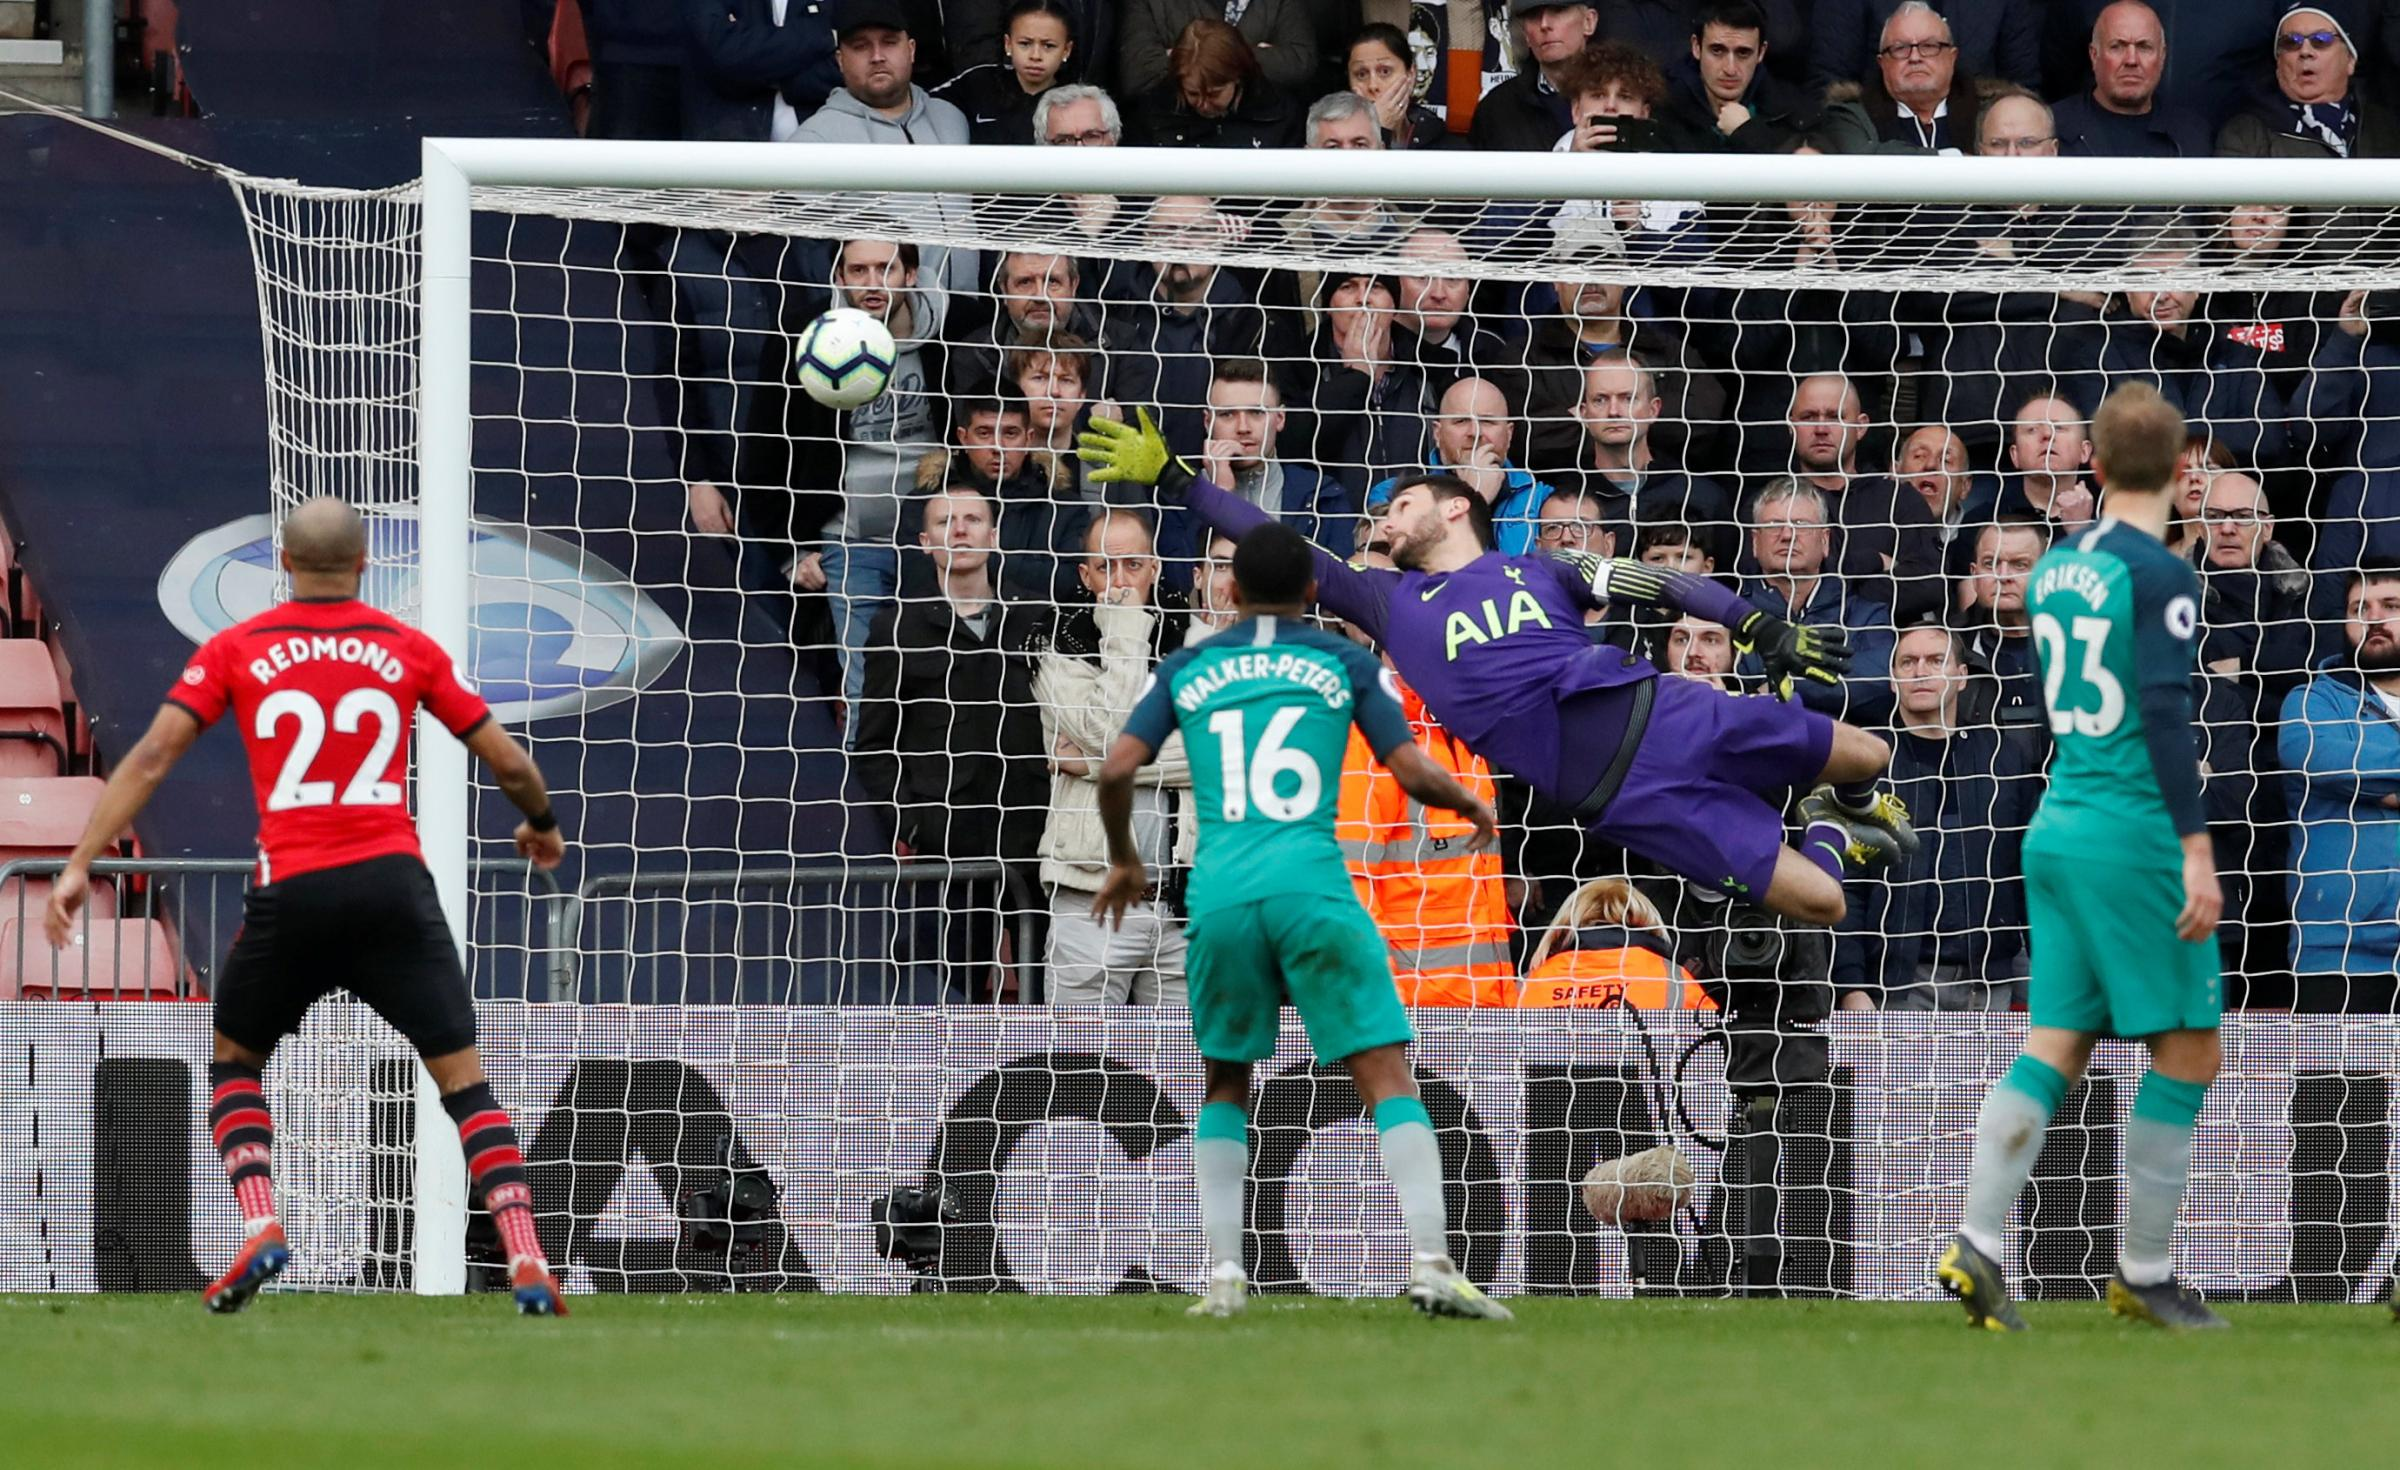 Hugo Lloris is beaten by James Ward-Prowse's match-winning free-kick. Picture: Action Images